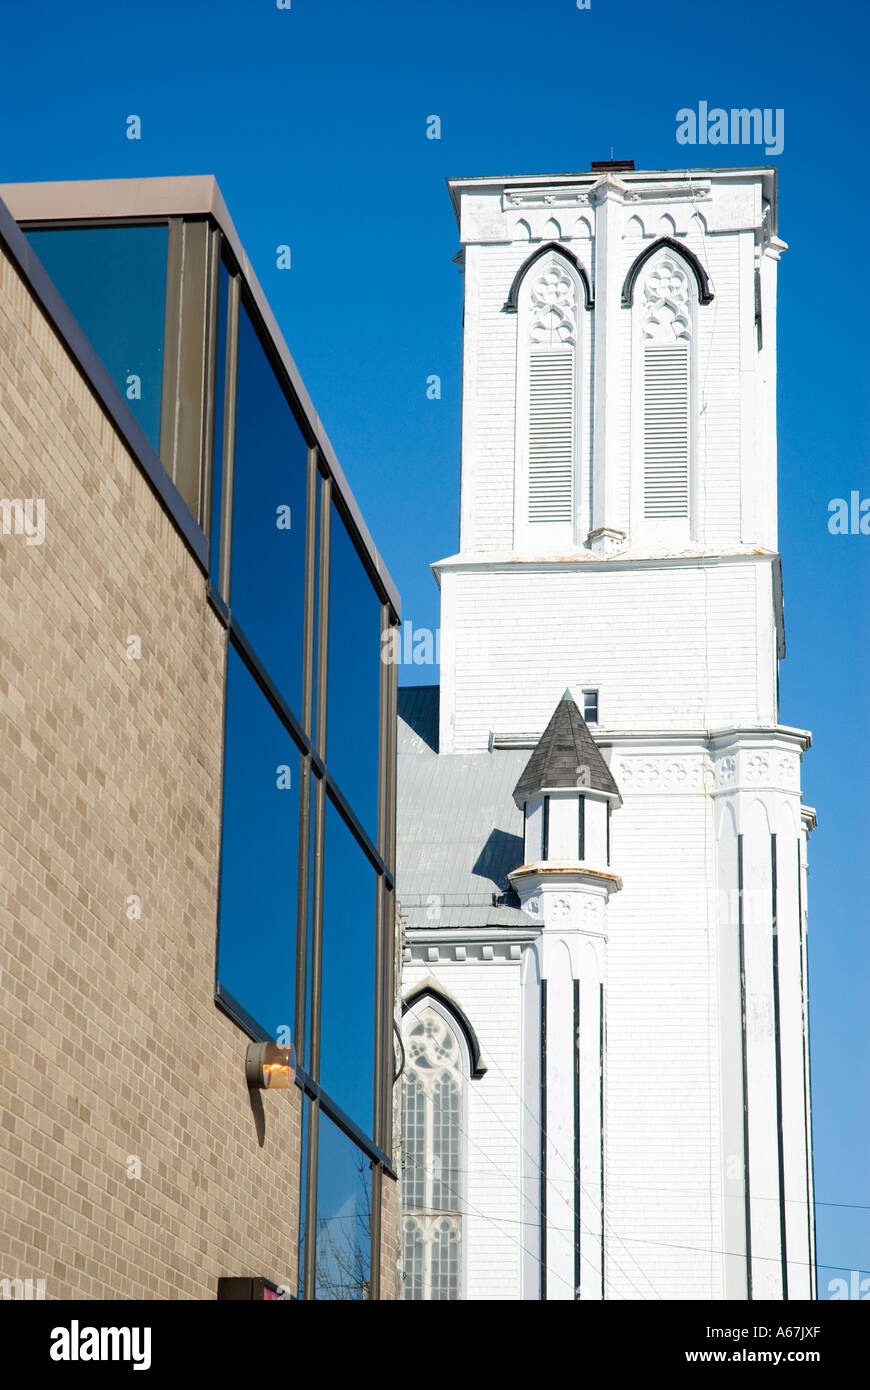 Religion and money contrasted with a church and a bank in Fredericton, New Brunswick, Canada - Stock Image